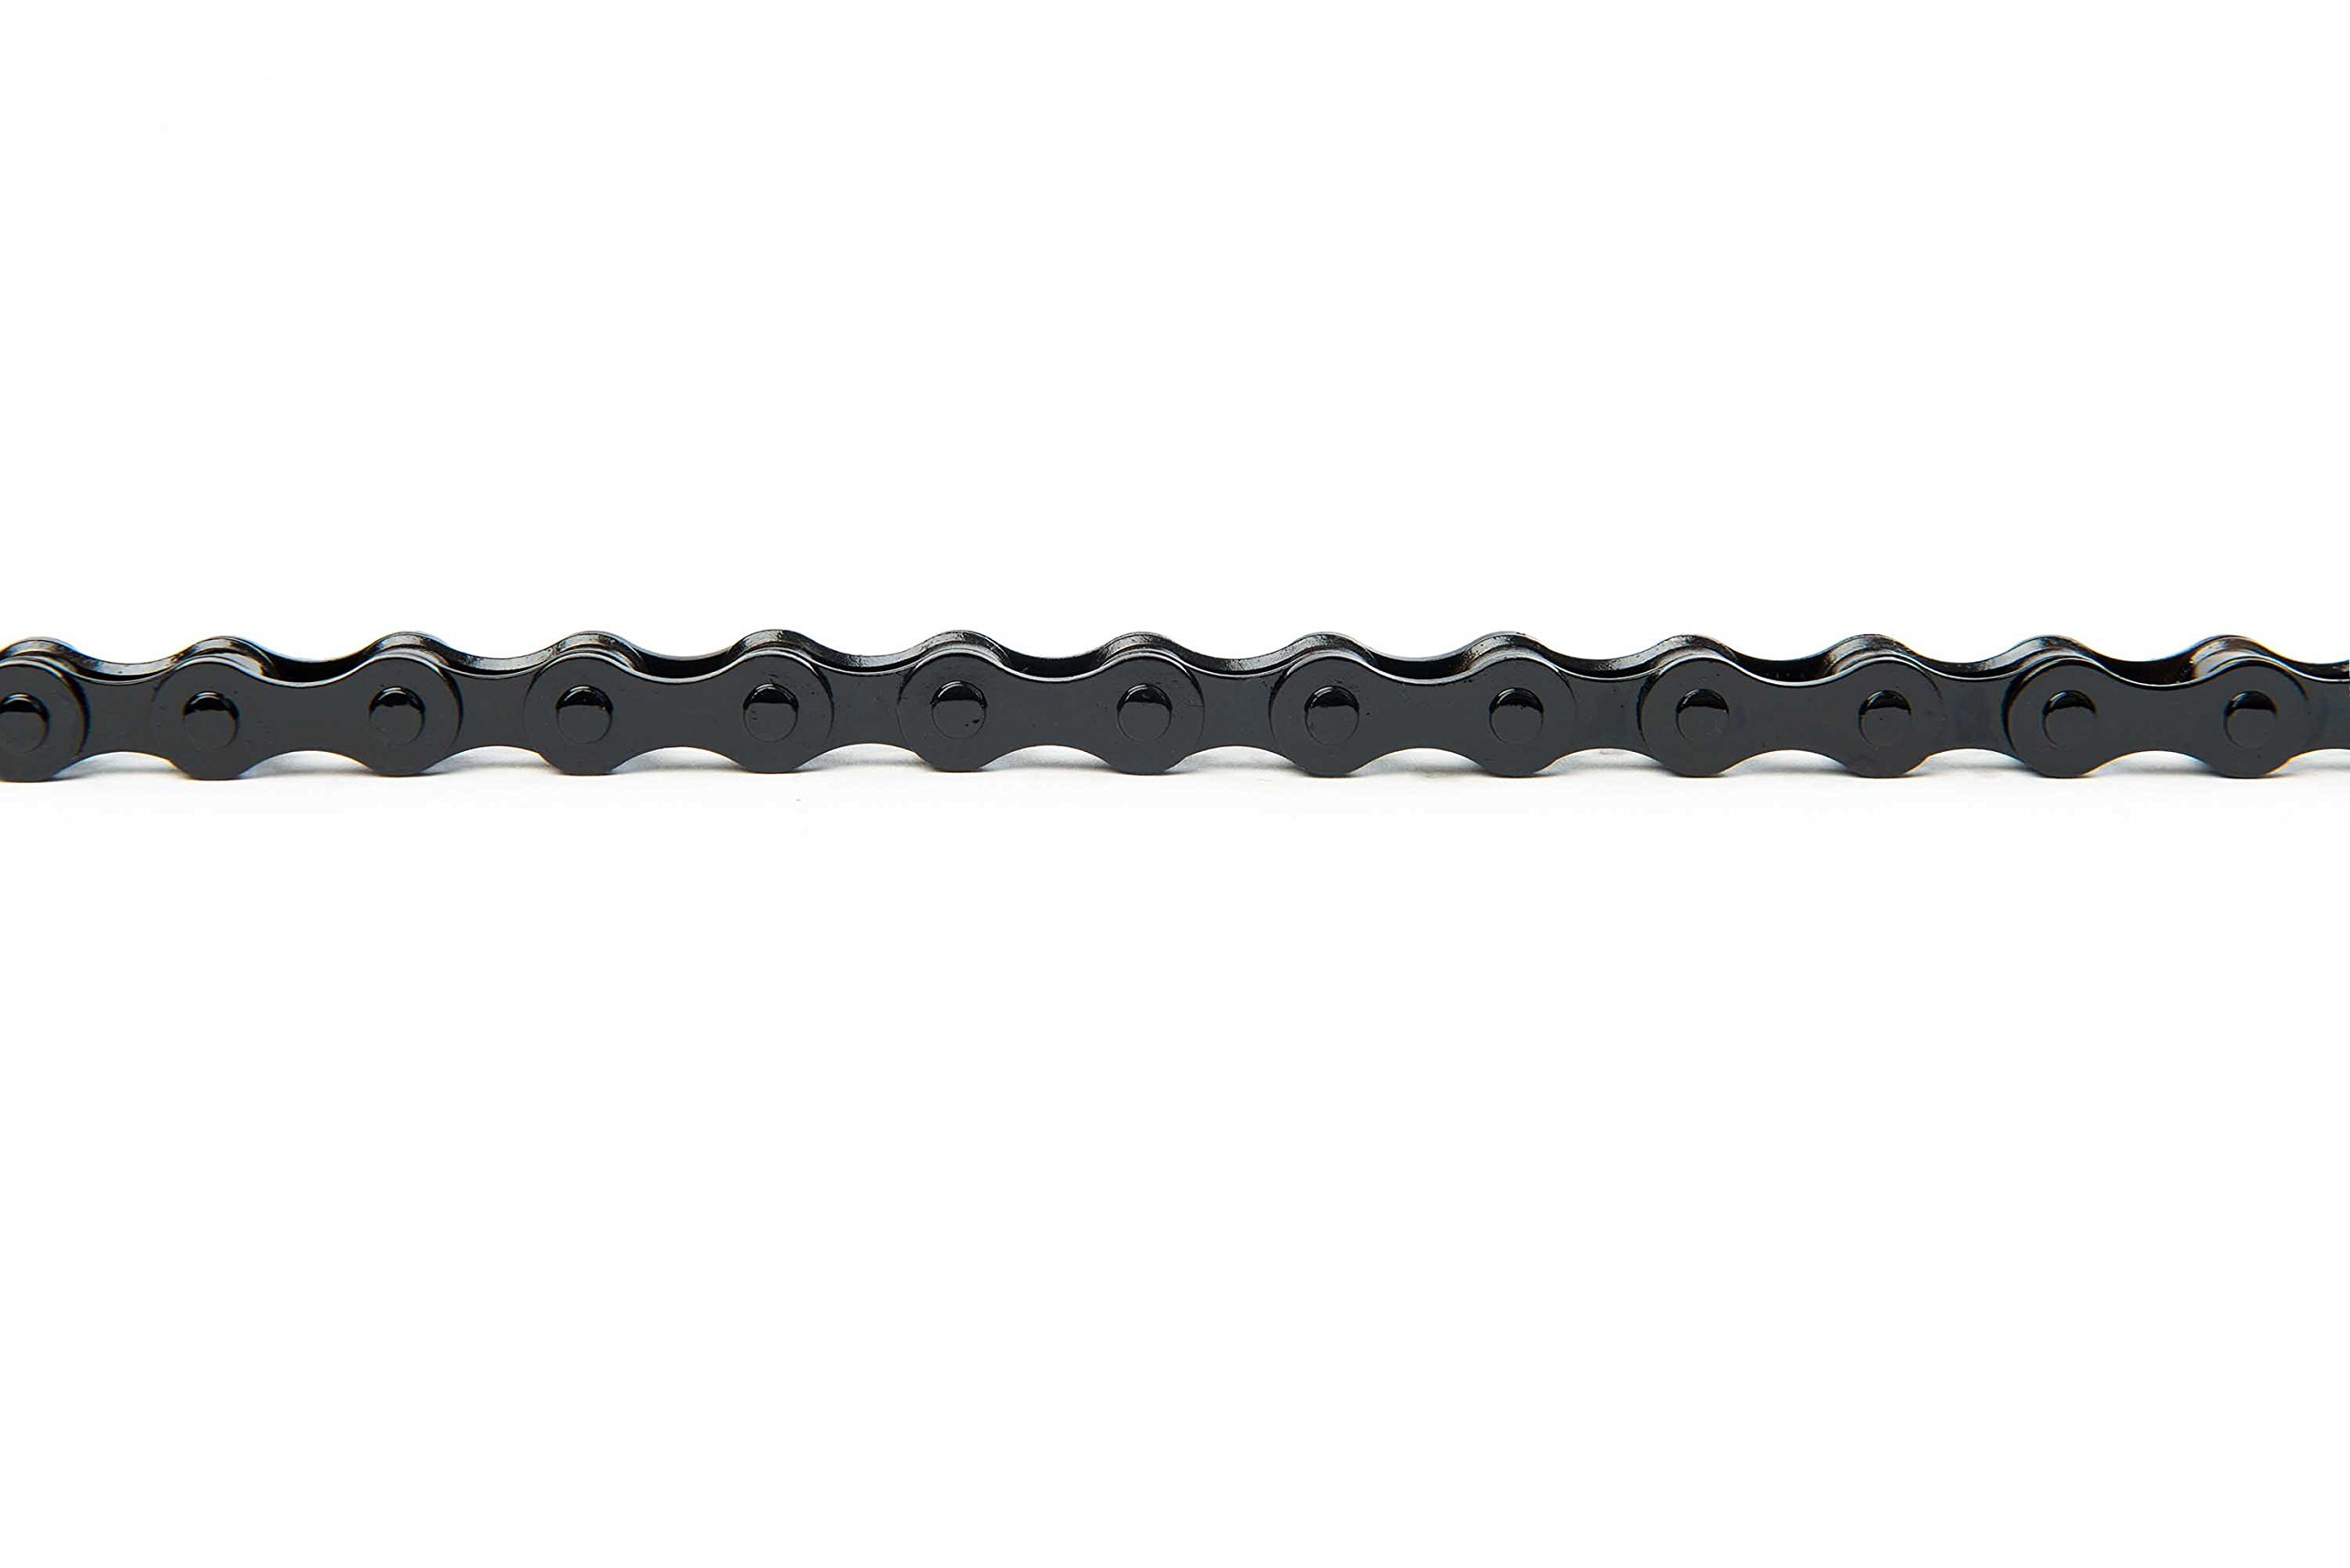 KMC Z410 Bicycle Chain 1-Speed 1//2 x 1//8-Inch 112L